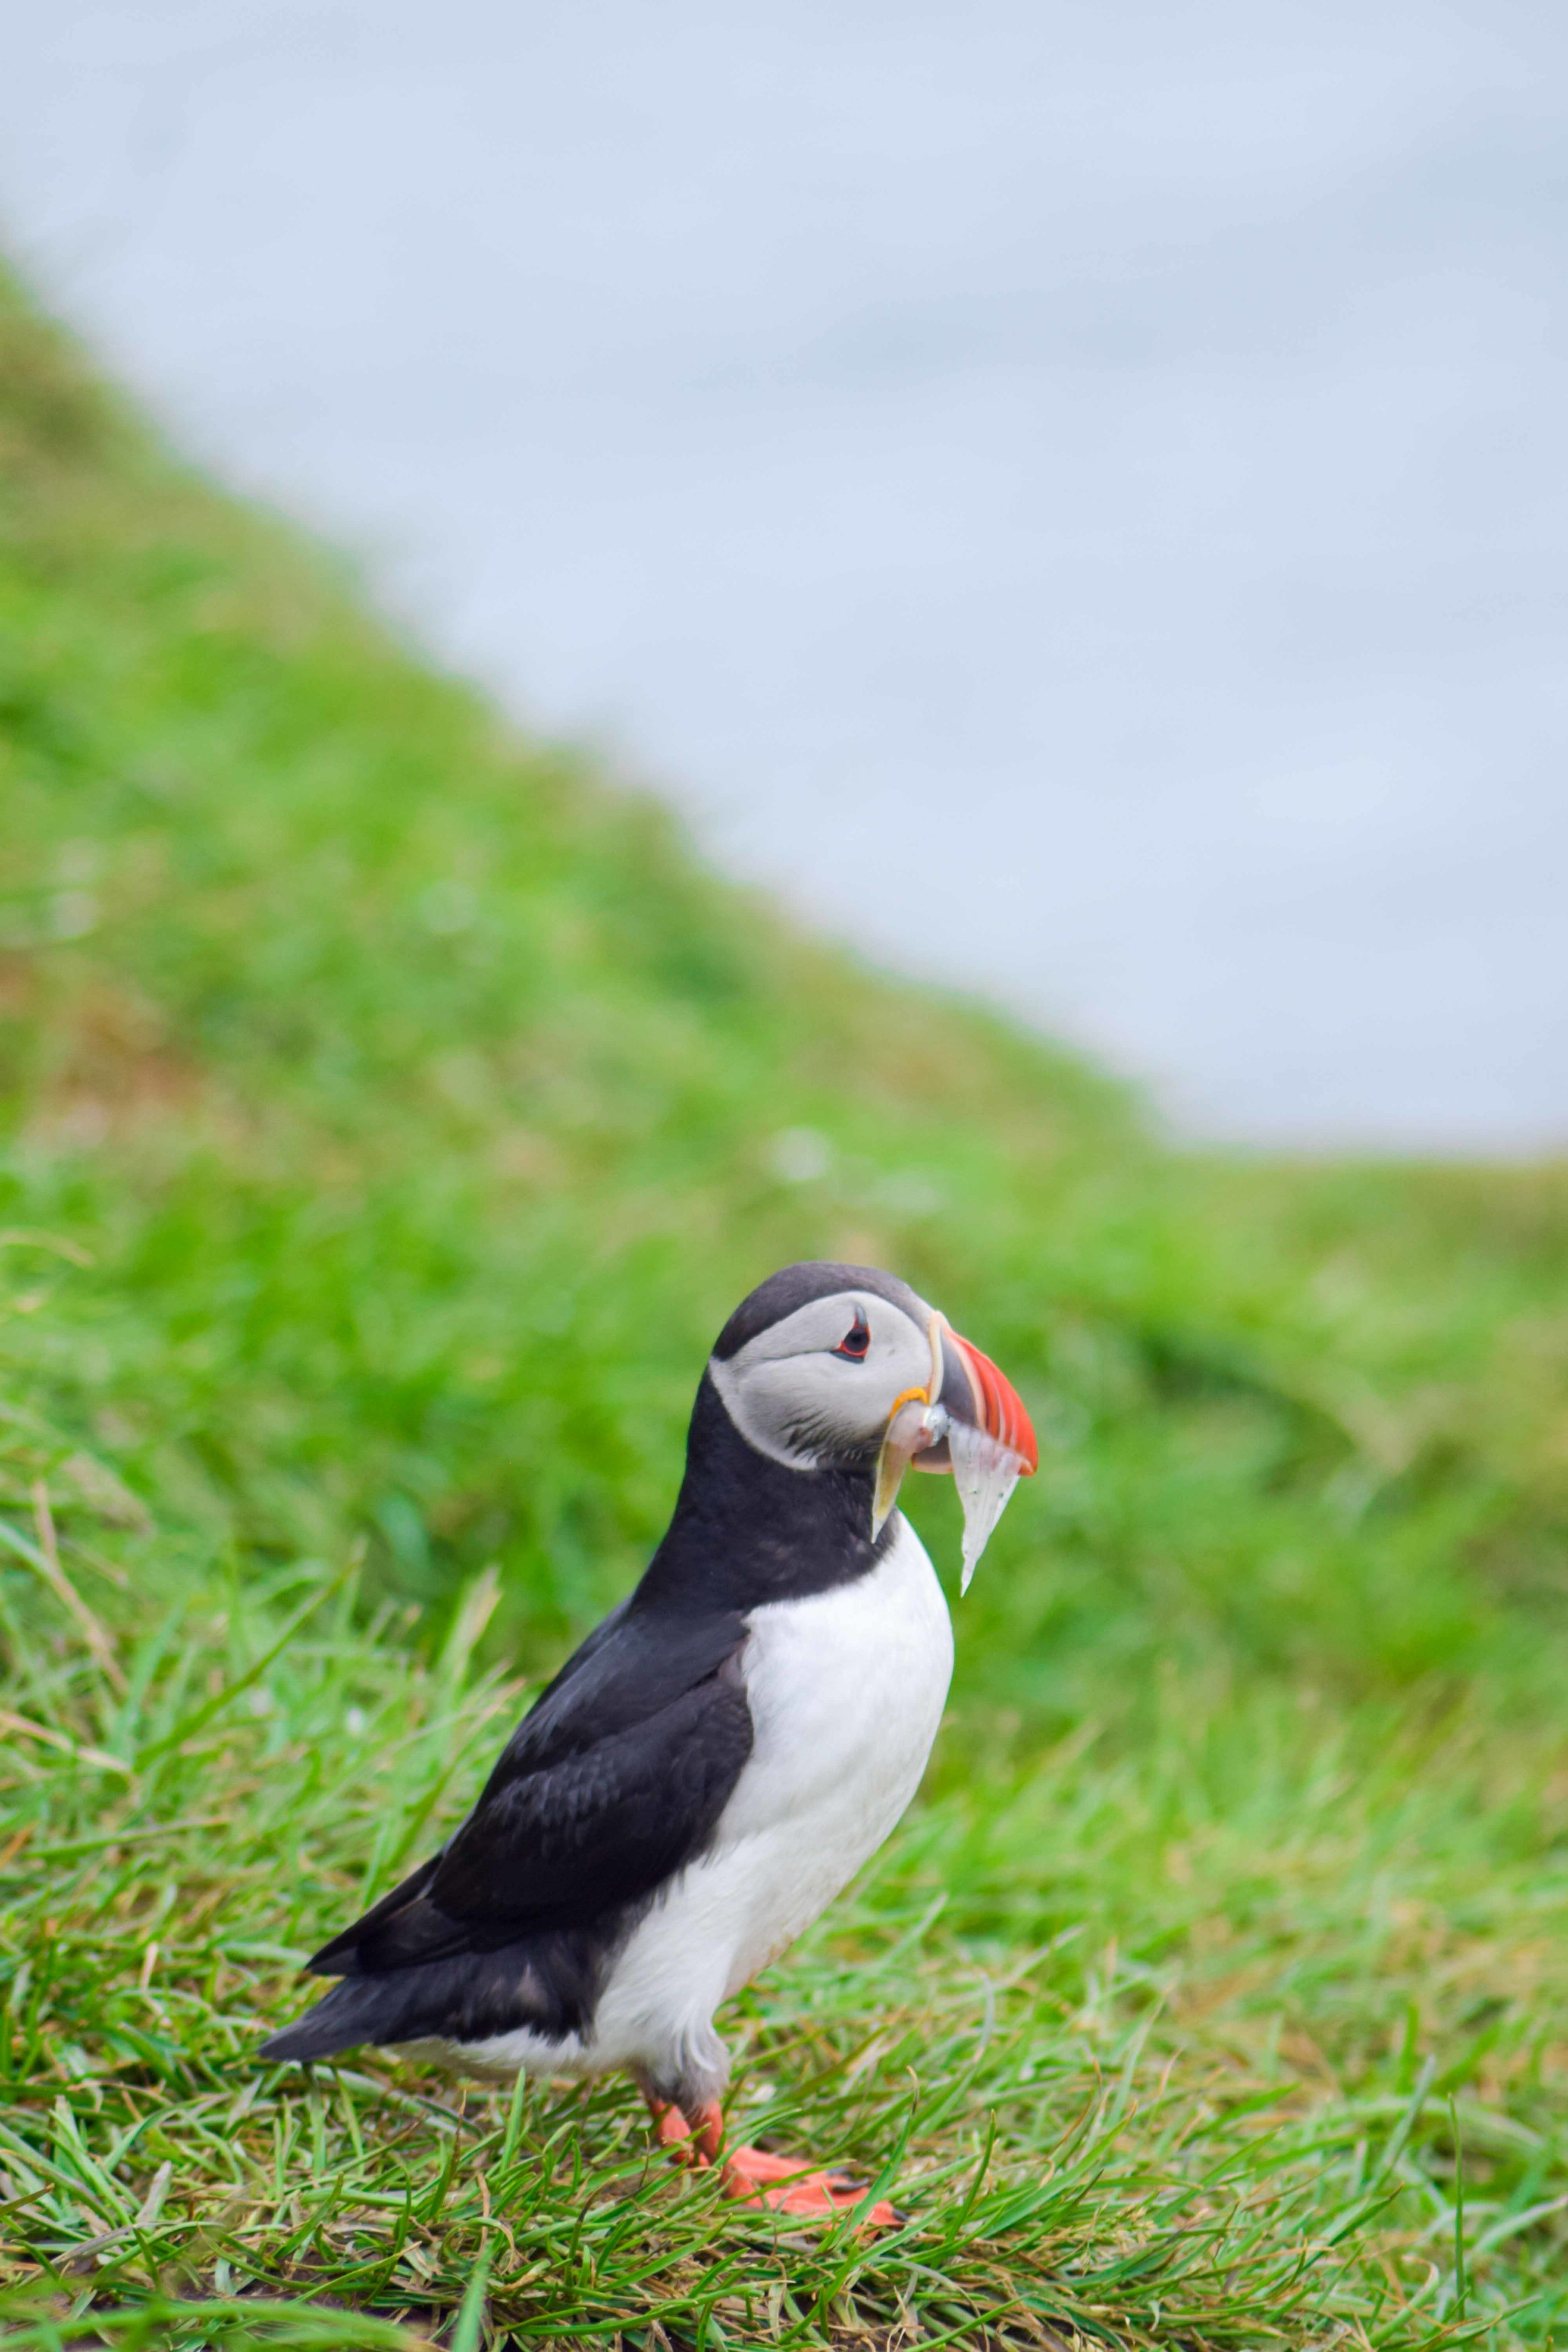 Best place to see puffins in Iceland